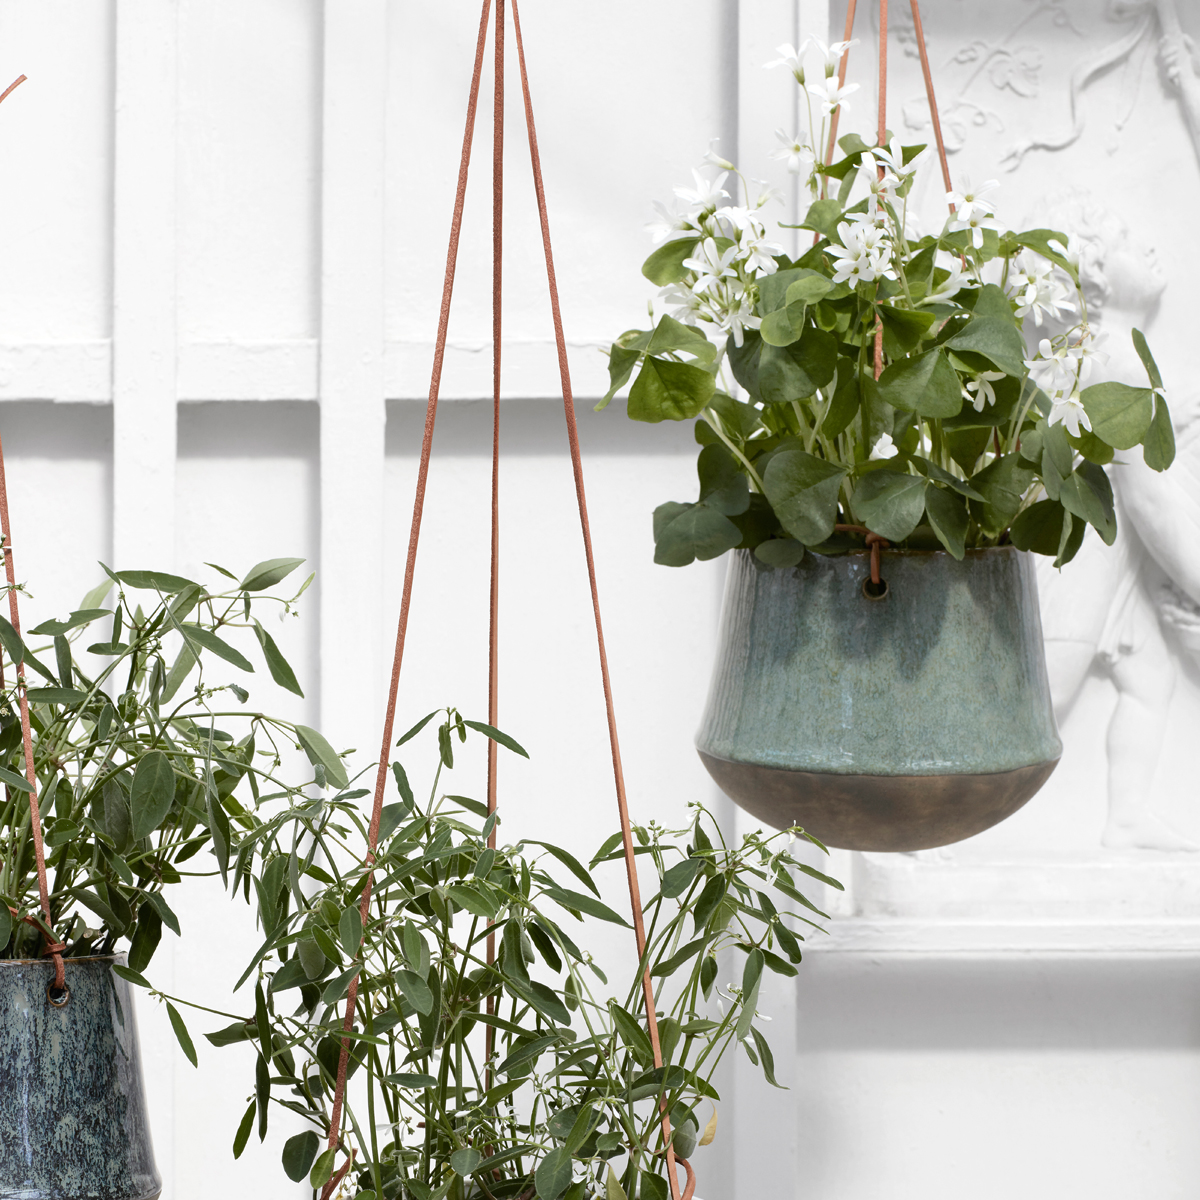 green-ceramic-hanging-plant-pot